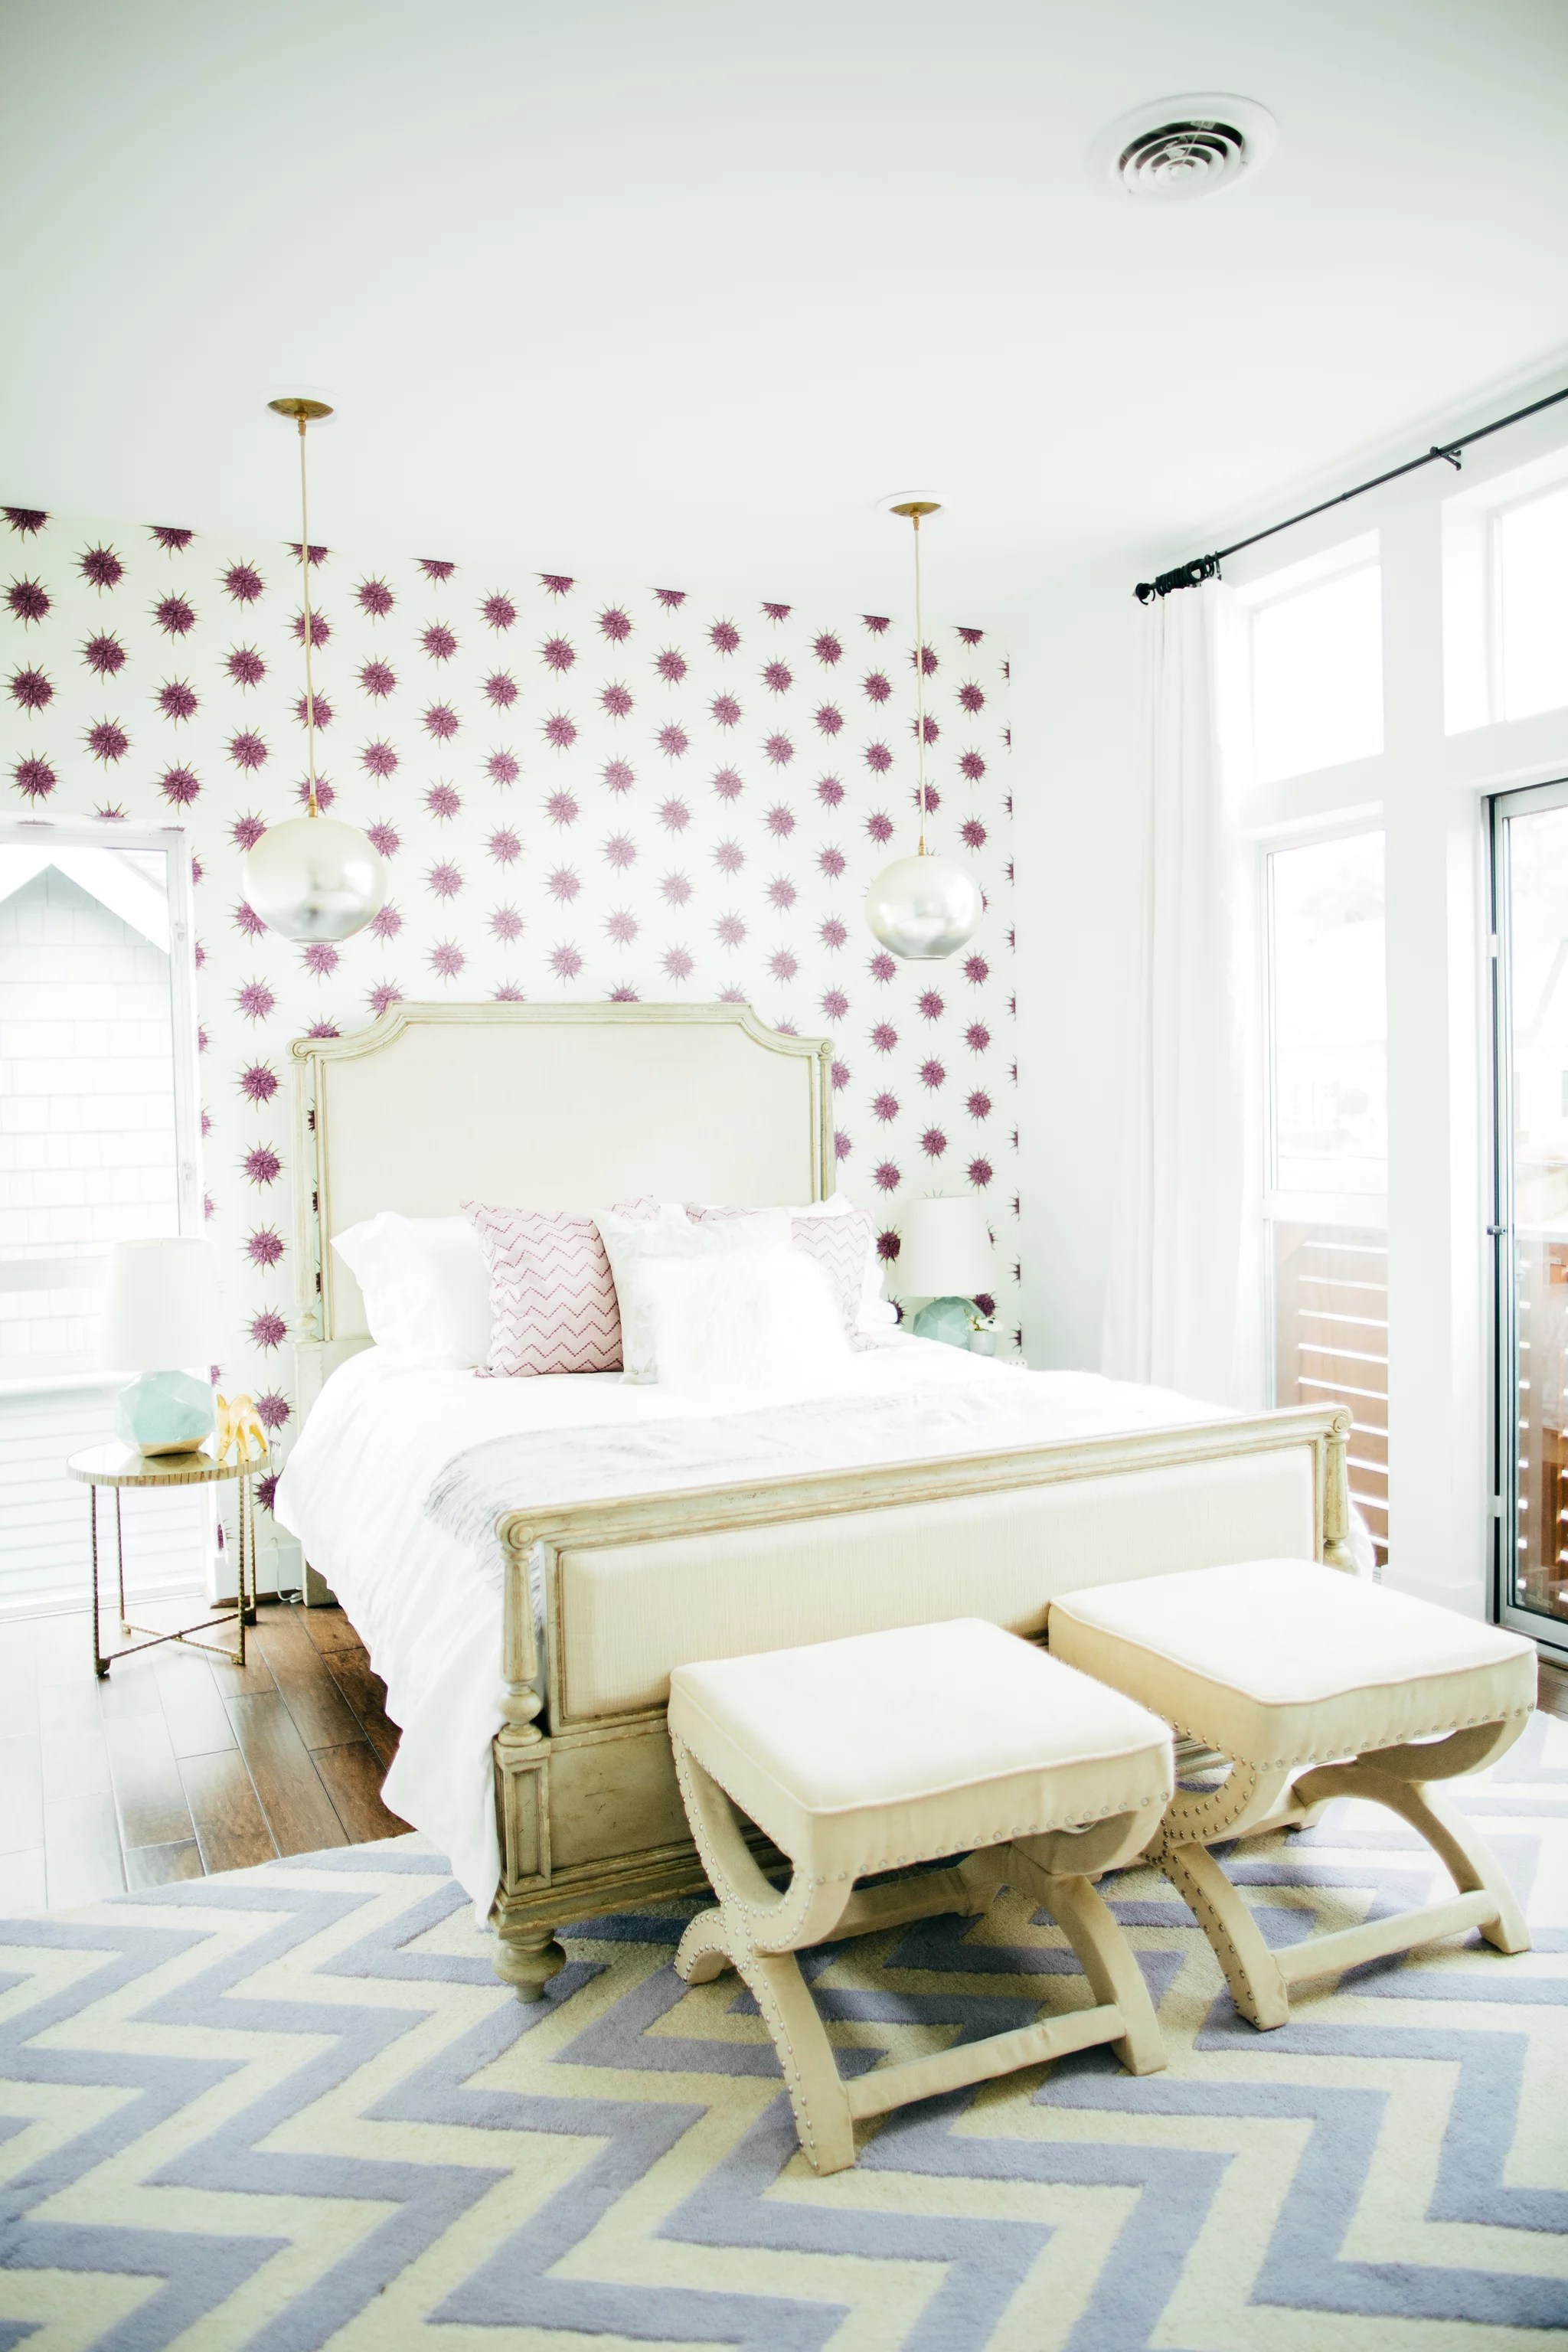 Wallpaper Accent Wall Bedroom Wallpaper An Accent Wall Ingenious Designer Decorating